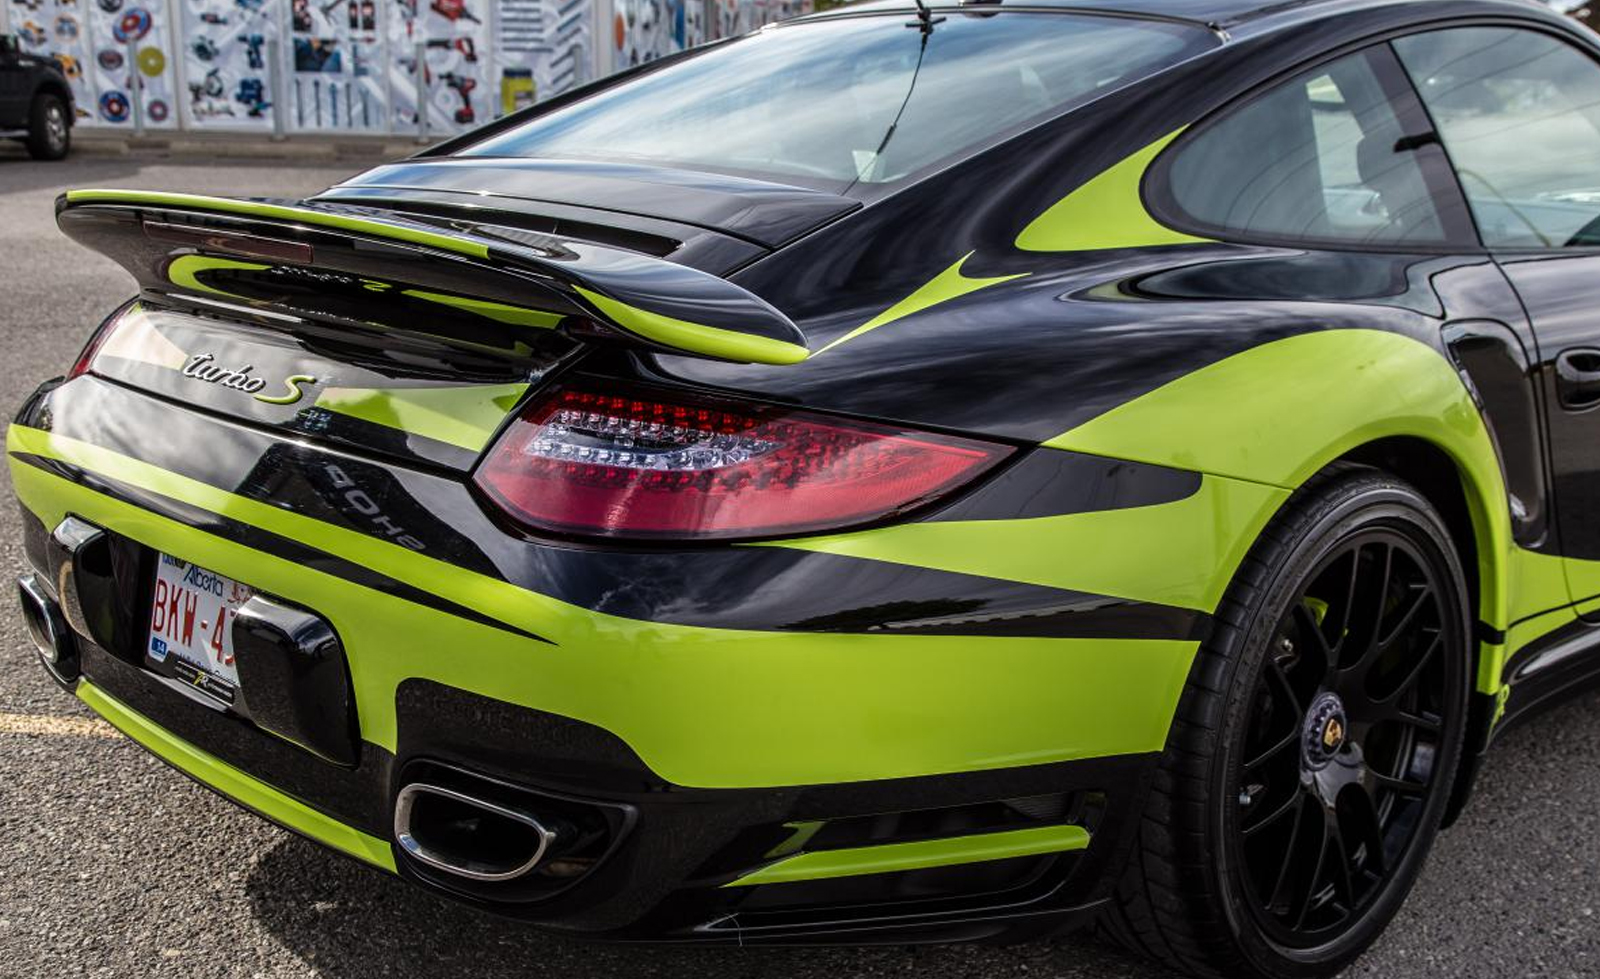 Porsche 911 Turbo S ZR Auto тюнинг